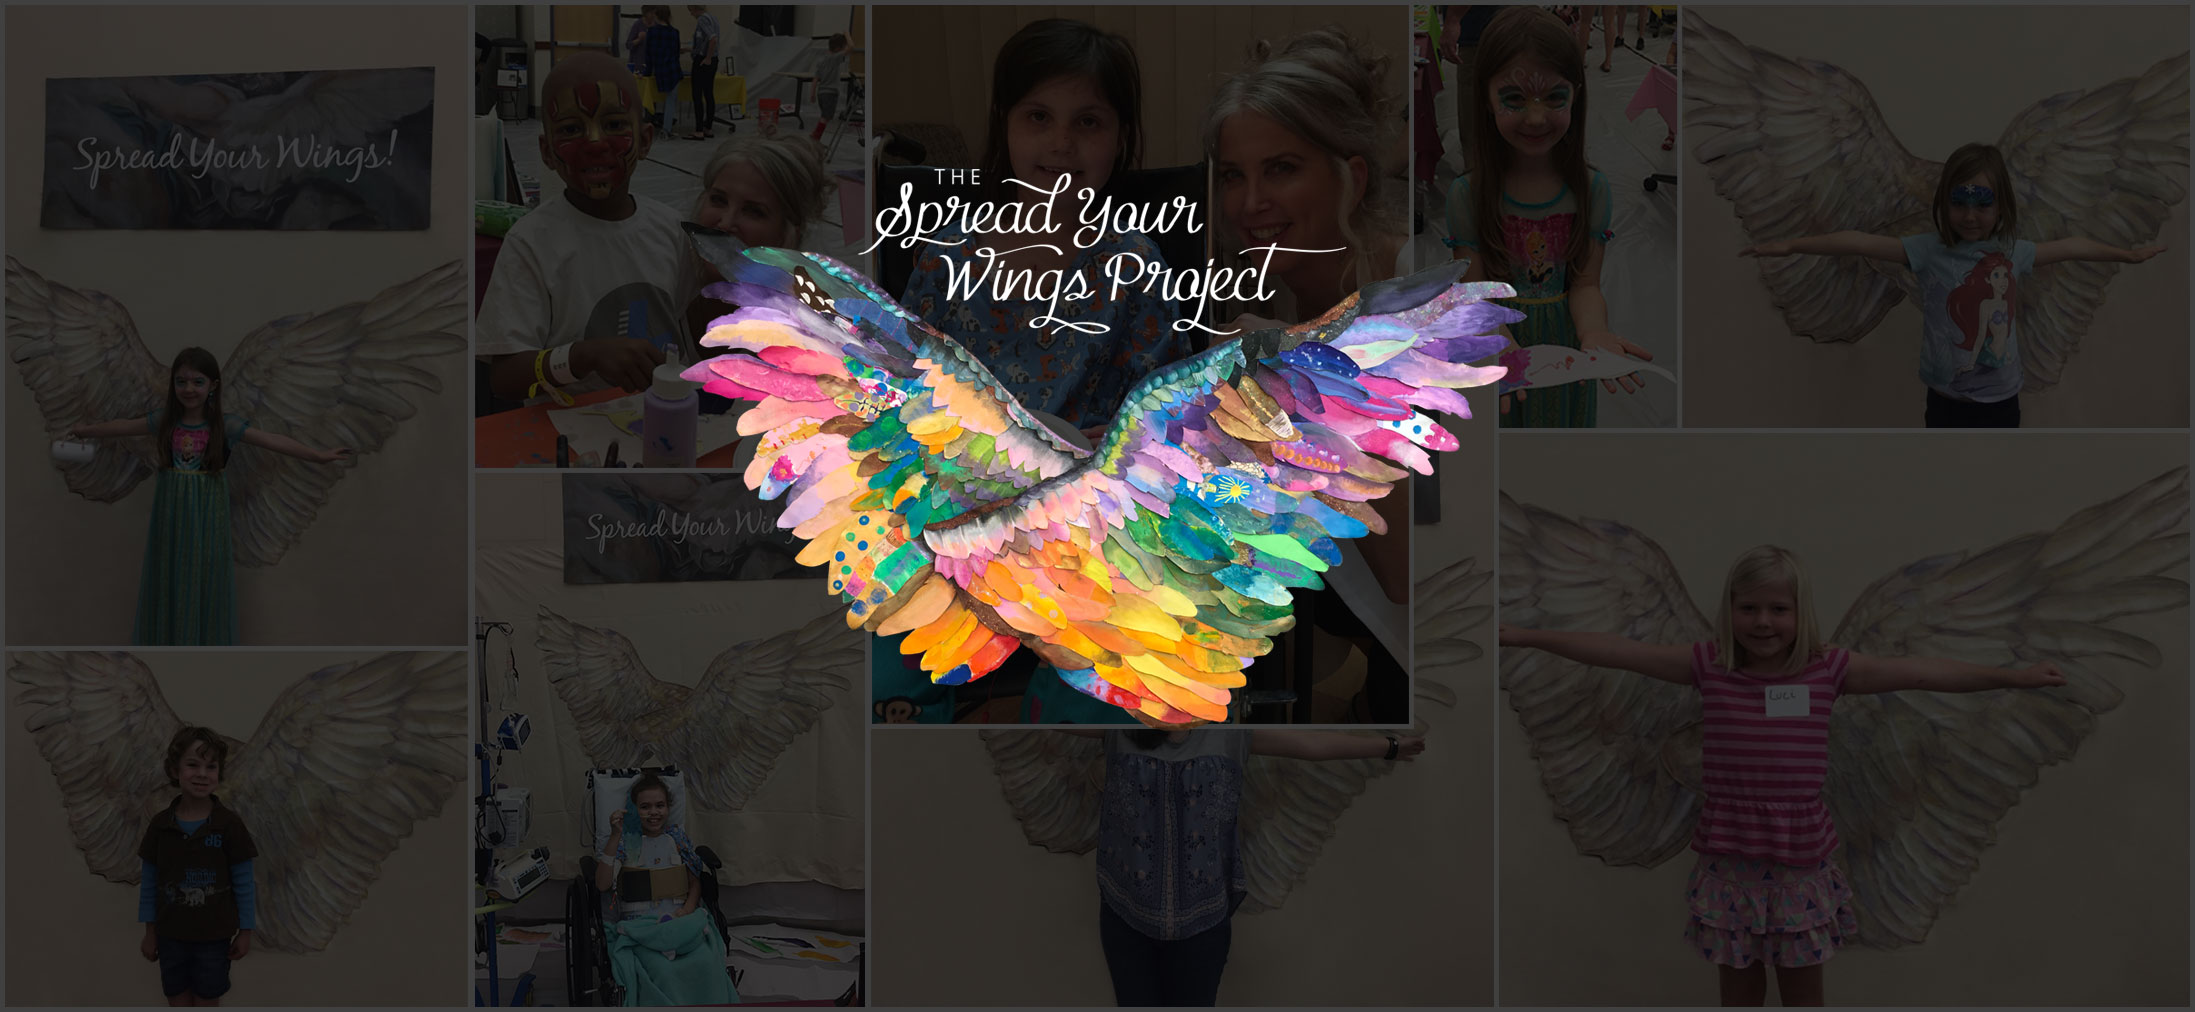 The Spread Your Wings Project